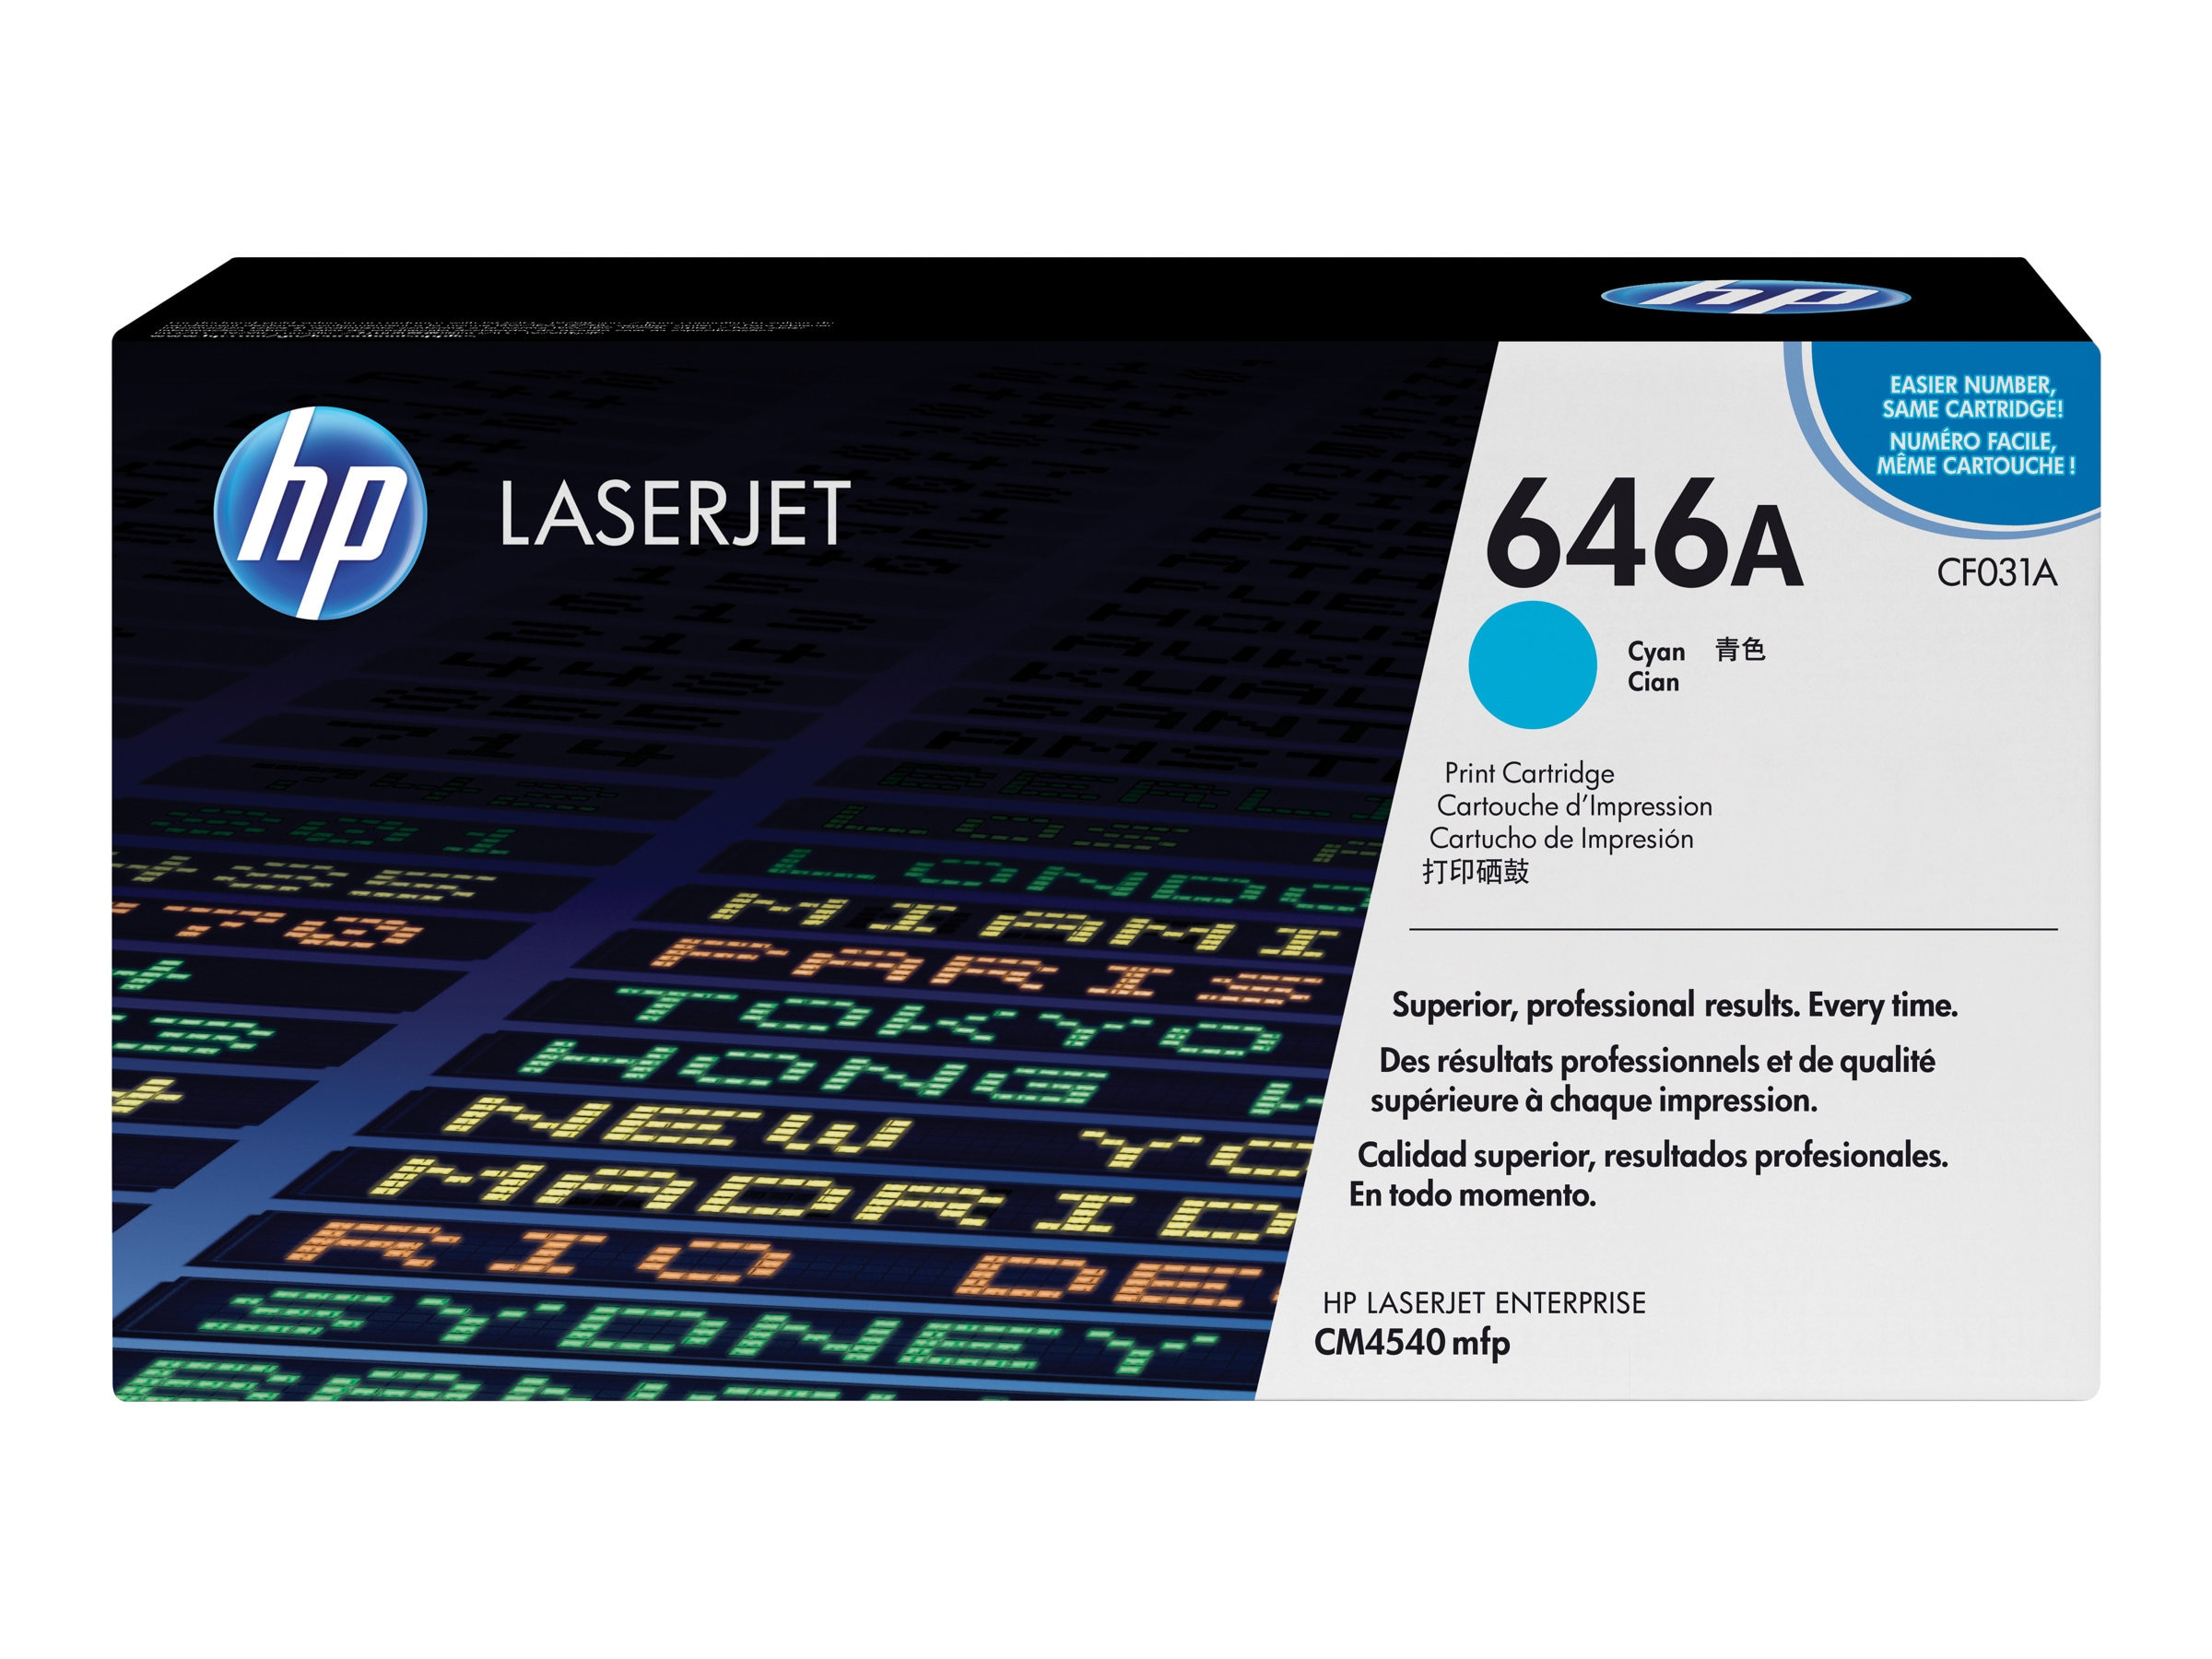 HP 646A (CF031A) Cyan Original LaserJet Toner Cartridge for HP LaserJet CM4540 MFP Series, CF031A, 12077321, Toner and Imaging Components